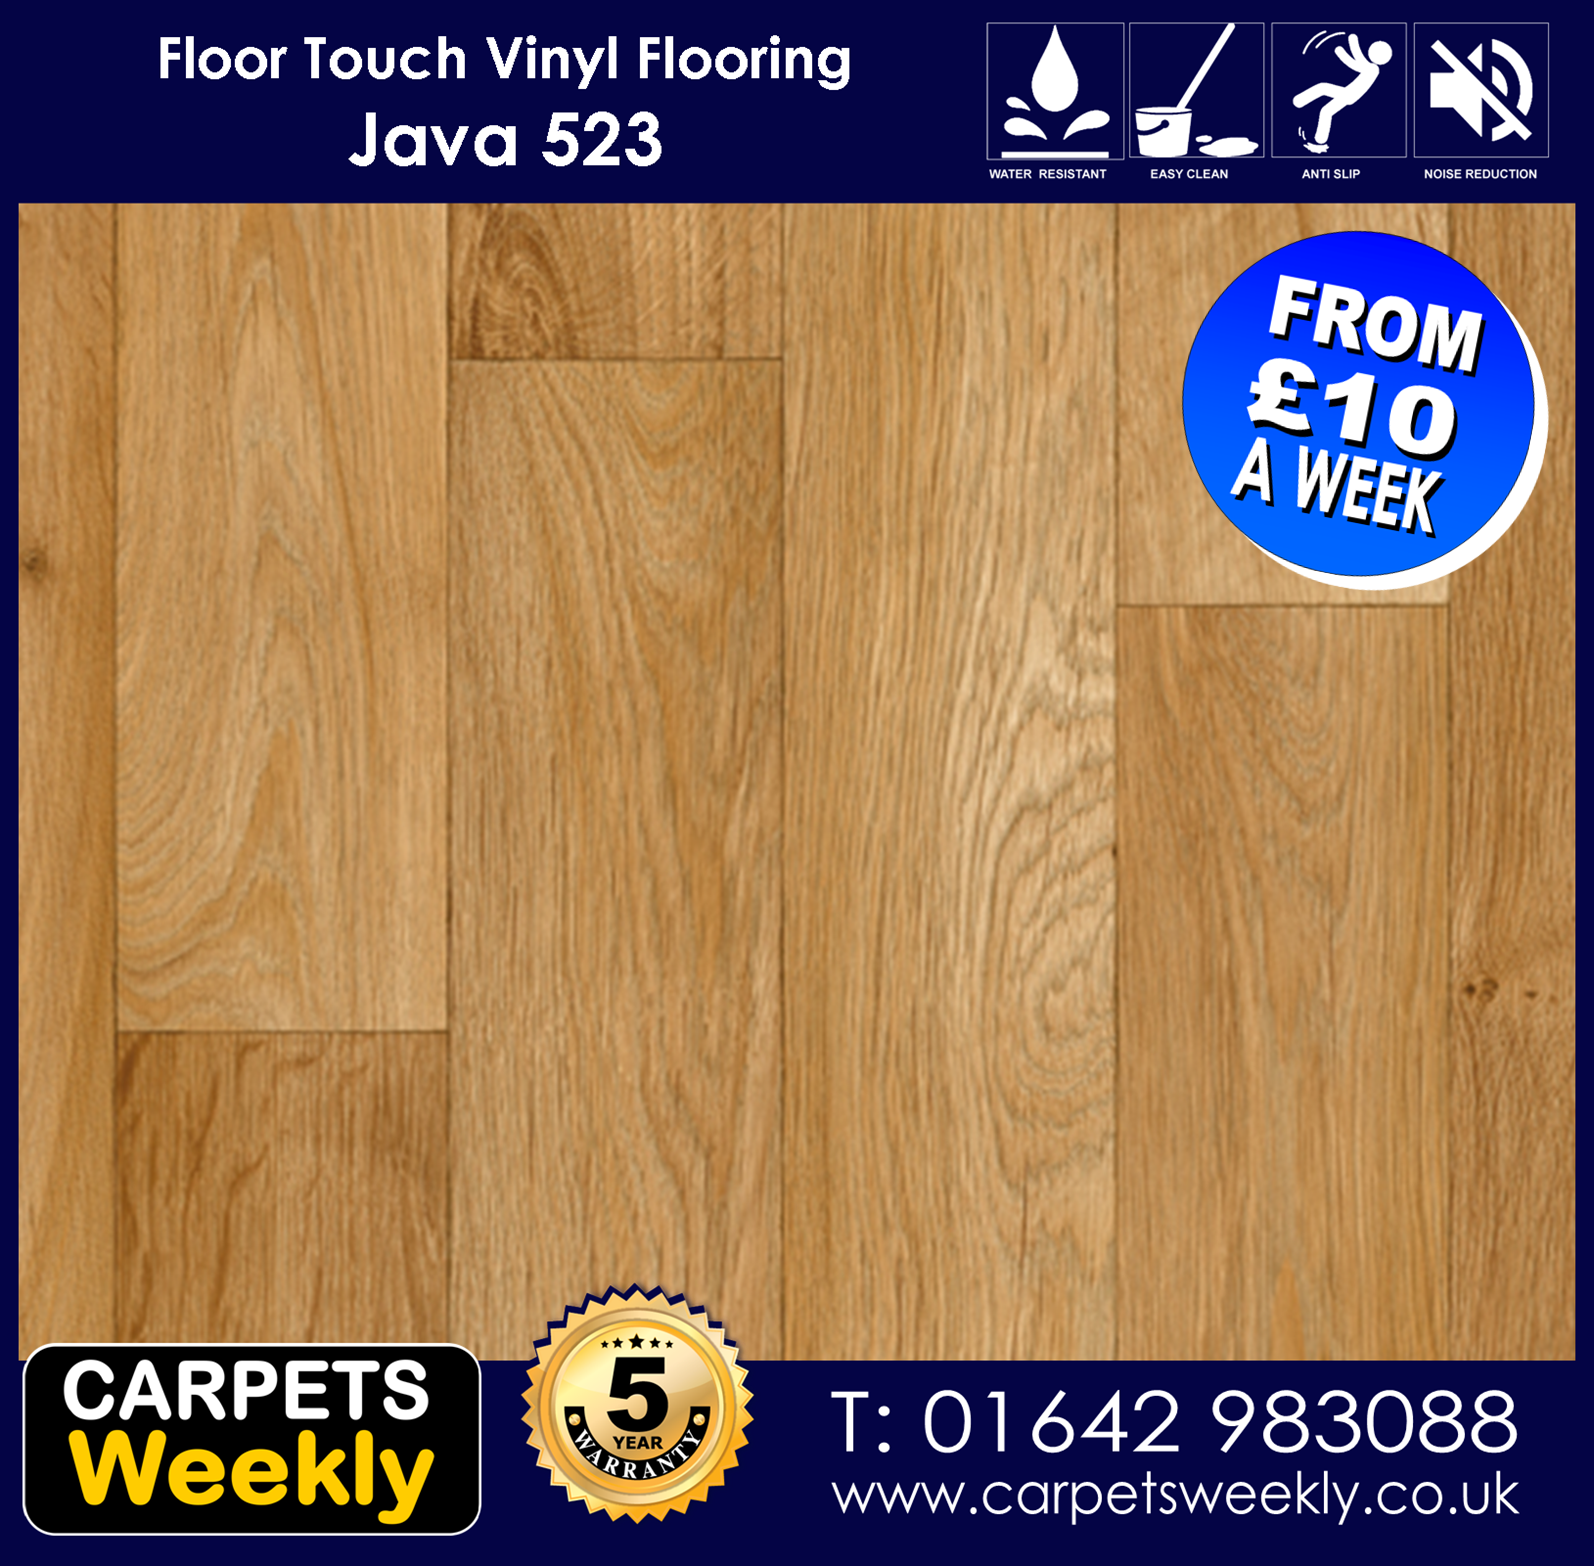 Java 523 Vinyl Flooring by Floor Touch from Carpets Weekly